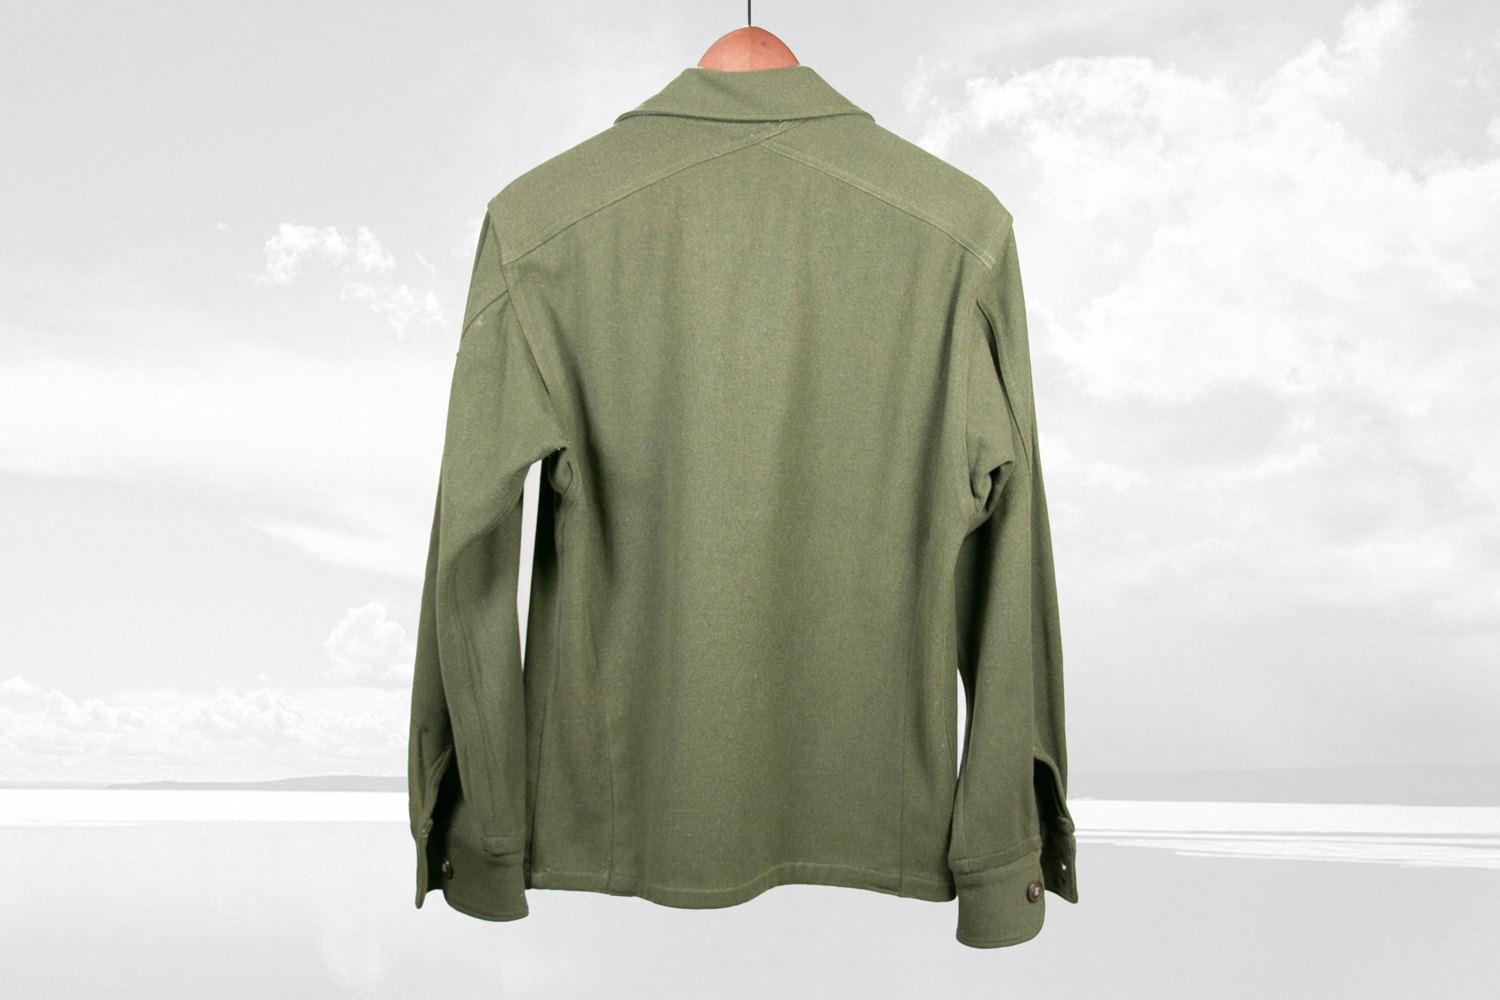 Vintage 1960's Wool Army Button Down Shirt, Size Small - Olive Green - Retro, Hipster, Military